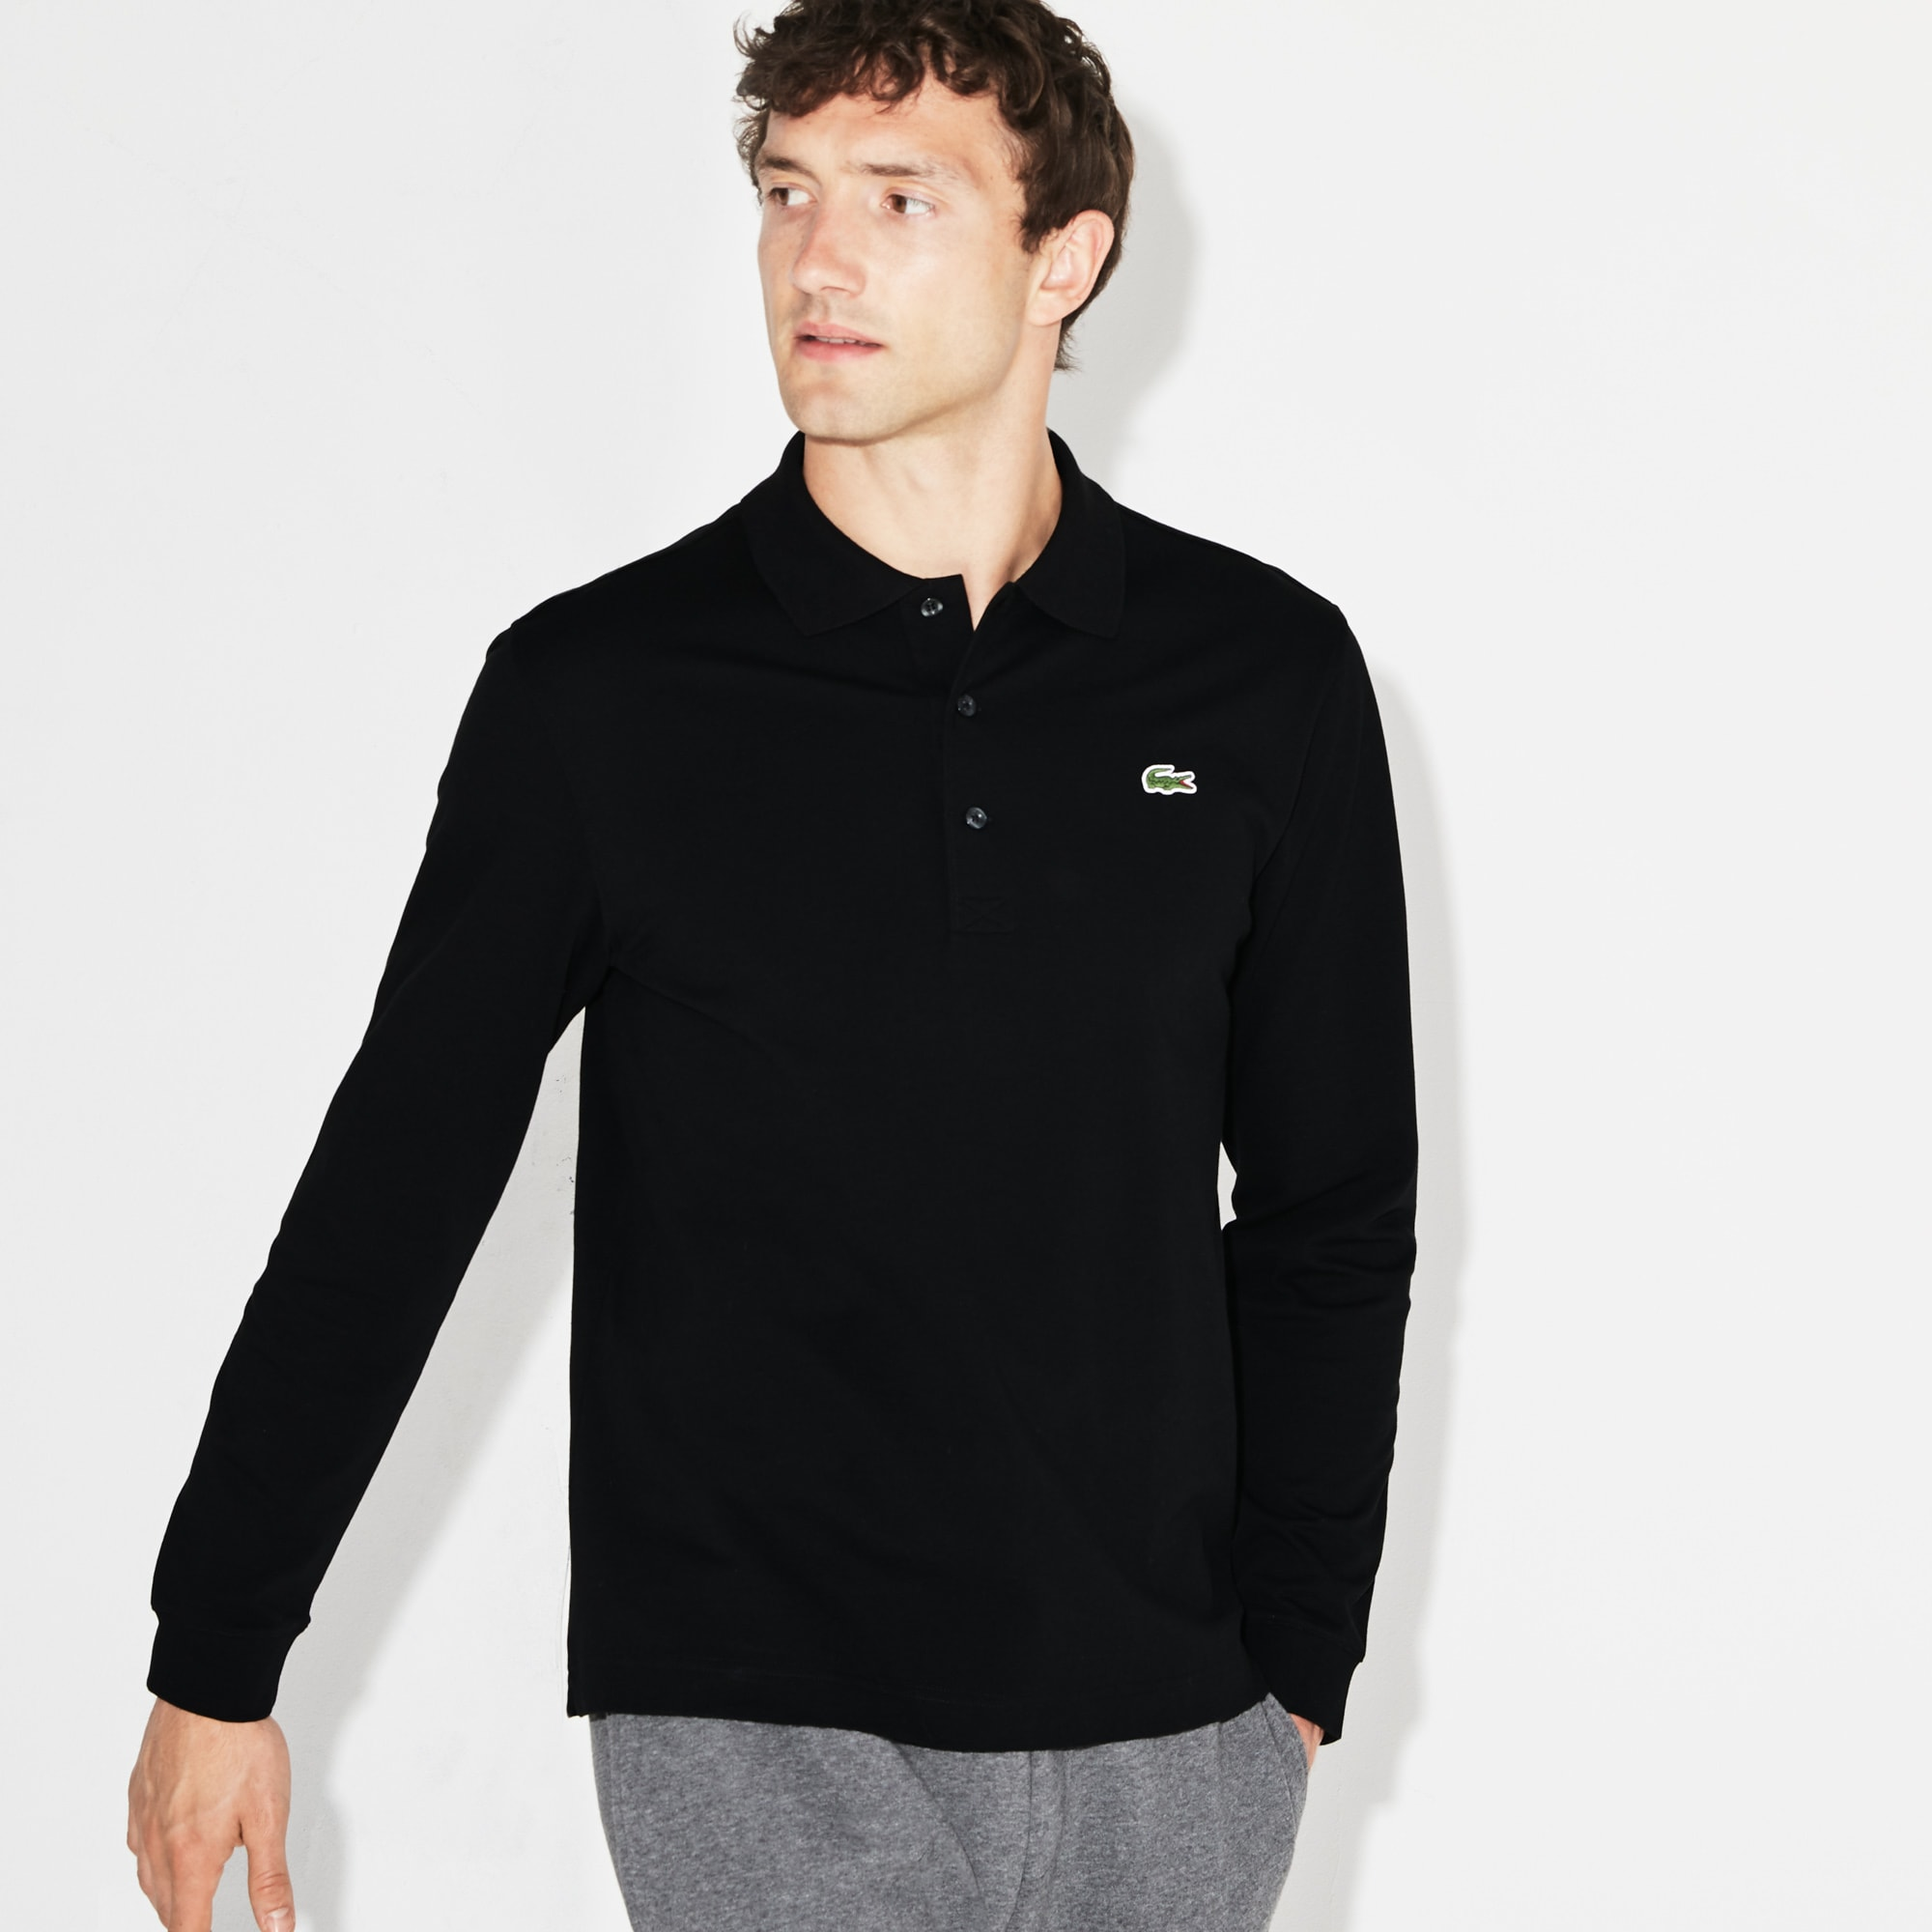 Men's Lacoste SPORT Ultra-Light Cotton Tennis